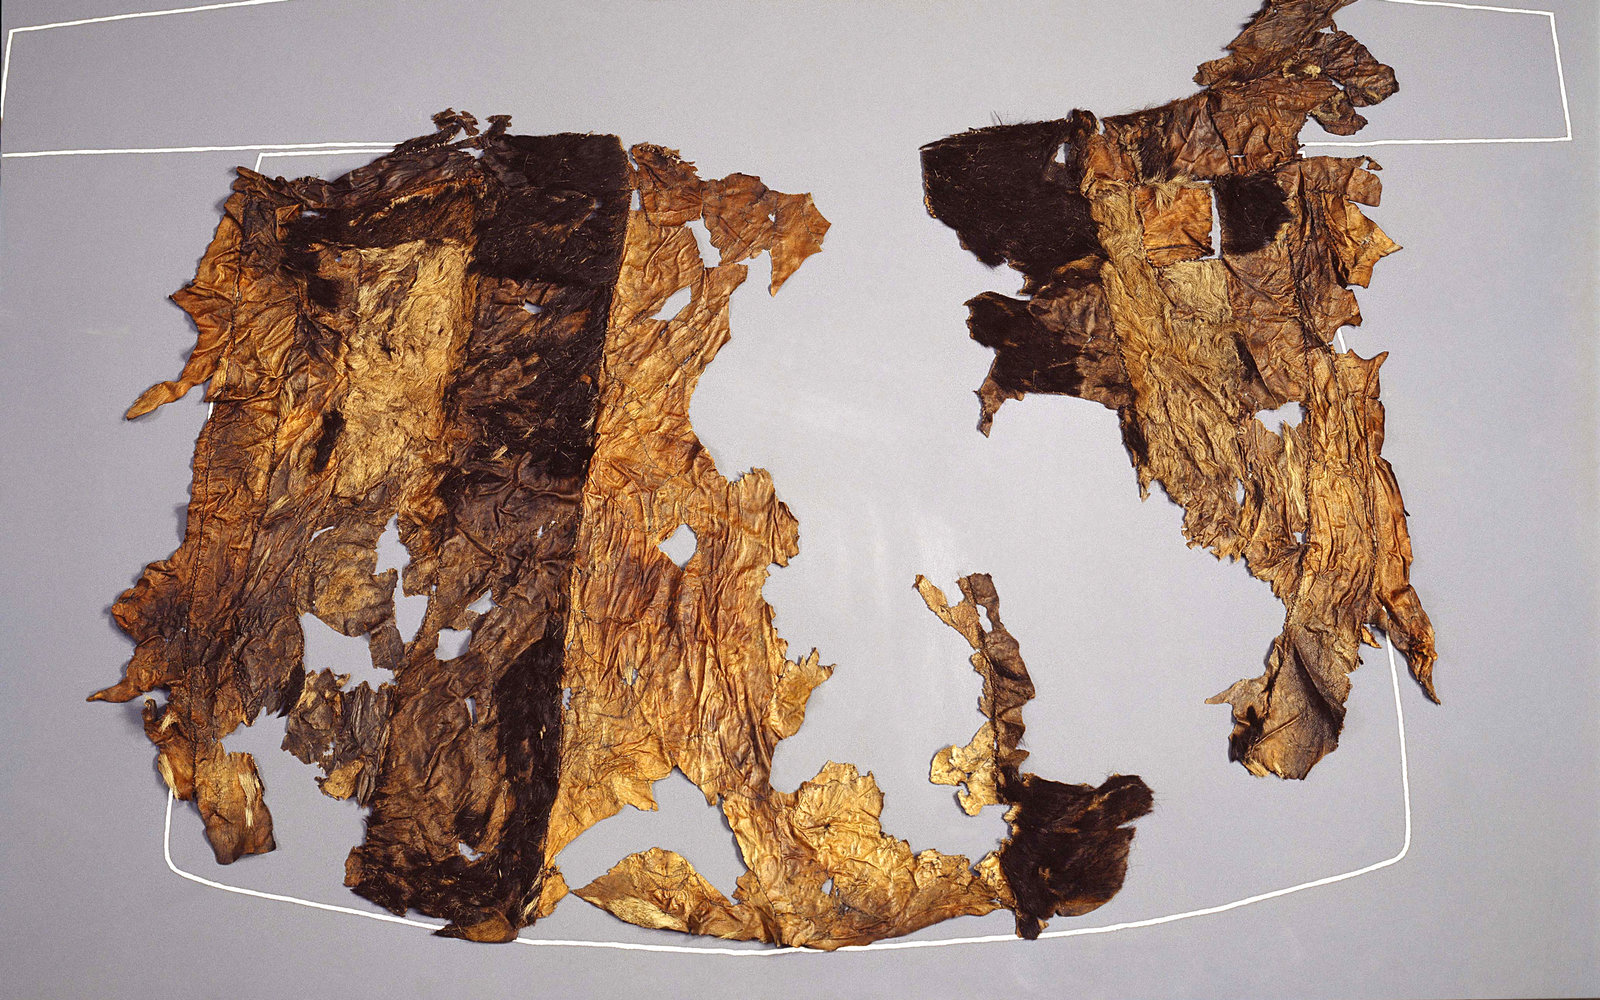 Scientists Solve Mystery of 5,300-Year-Old Ice Man's Clothes